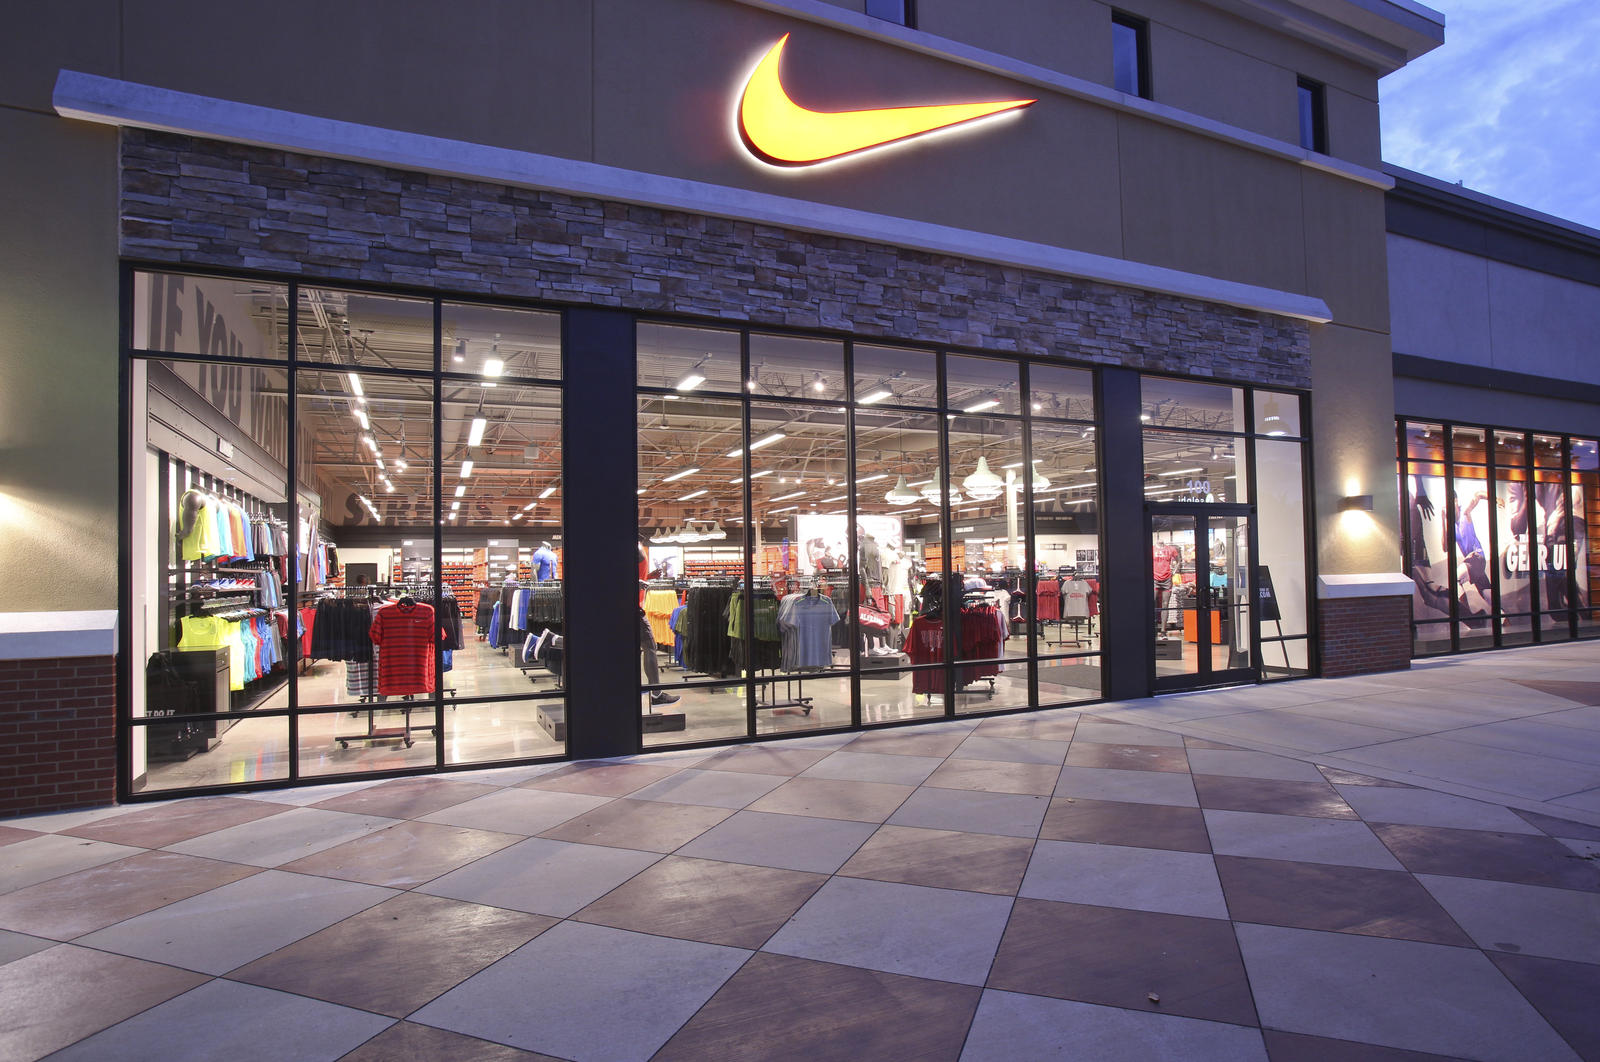 Nike Outlet Store,Nike Factory Outlet Online Discount Sale! 30%% OFF! Newest & Classic Nike Air Max, Nike Air Force one, Nike Free Run Shoes,Nike Blazers,Basketball Shoes etc. Great Selection & Free Shipping!